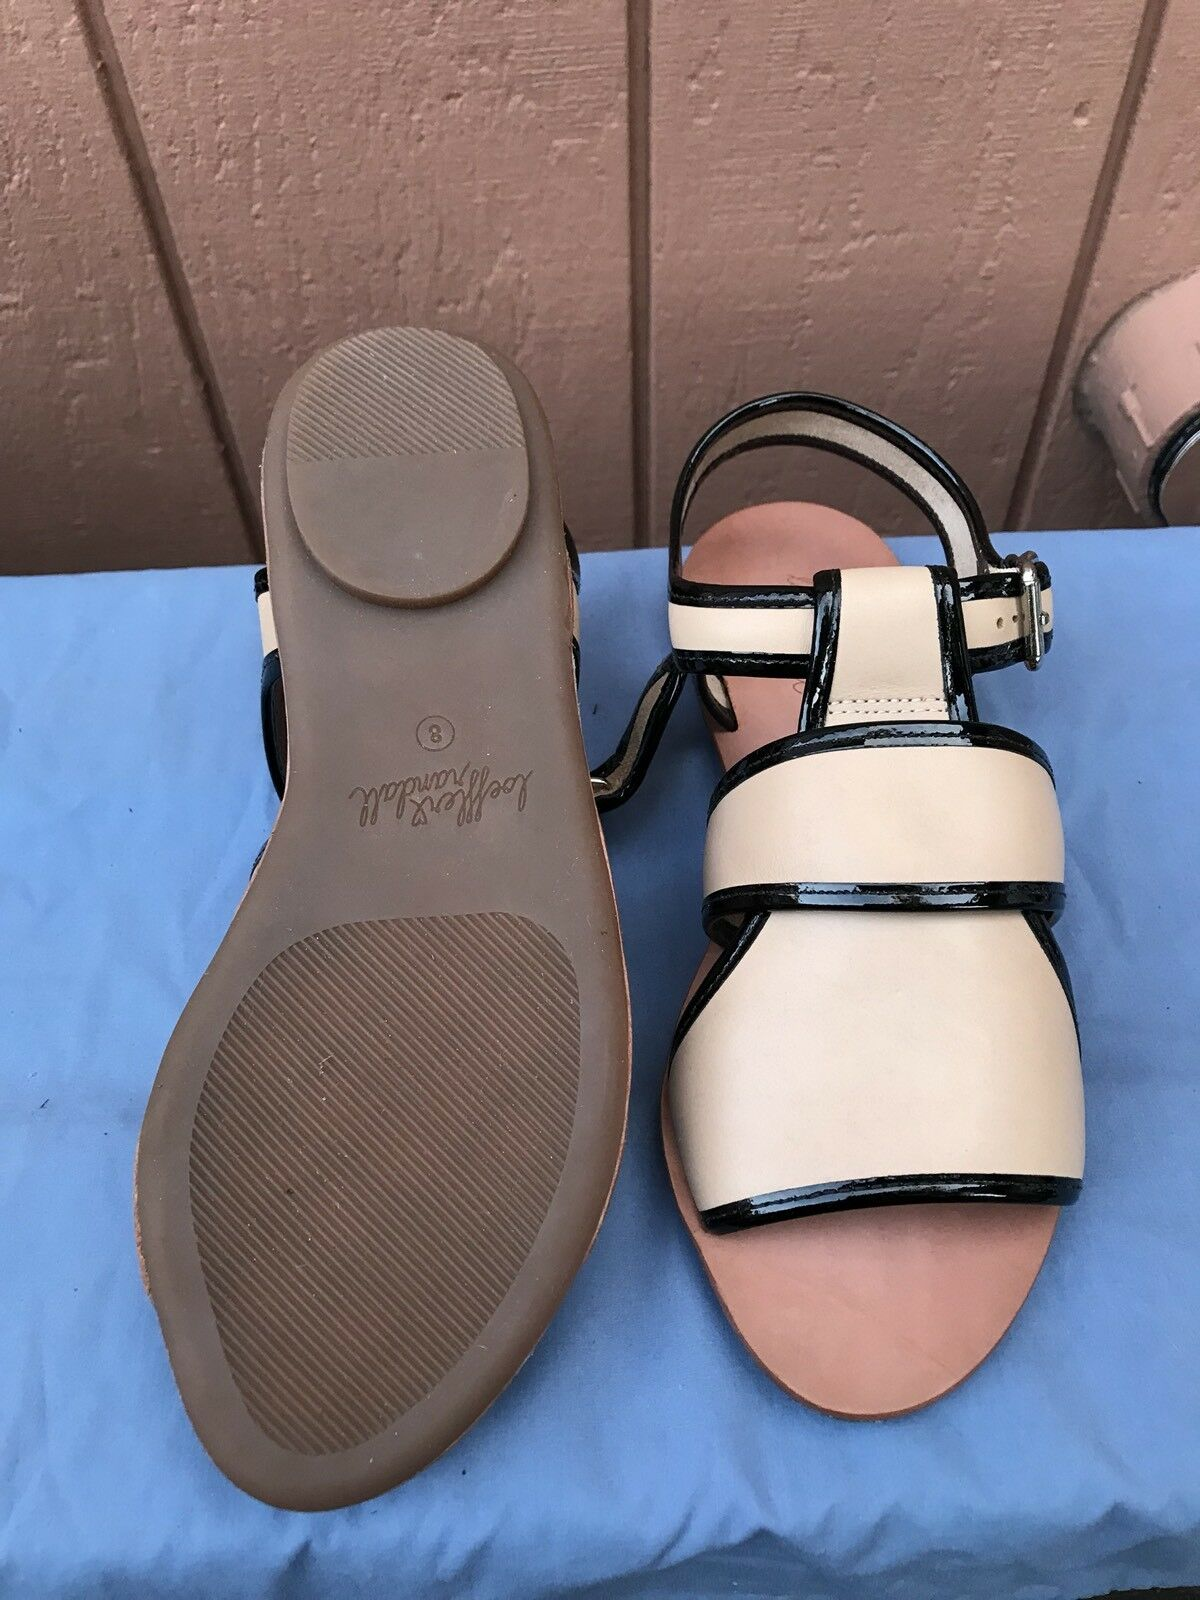 NEW Loeffler Randall Size Size Size US 8 Beige Cross Strap Leather Flat Sandal Buckle A5 72ec68